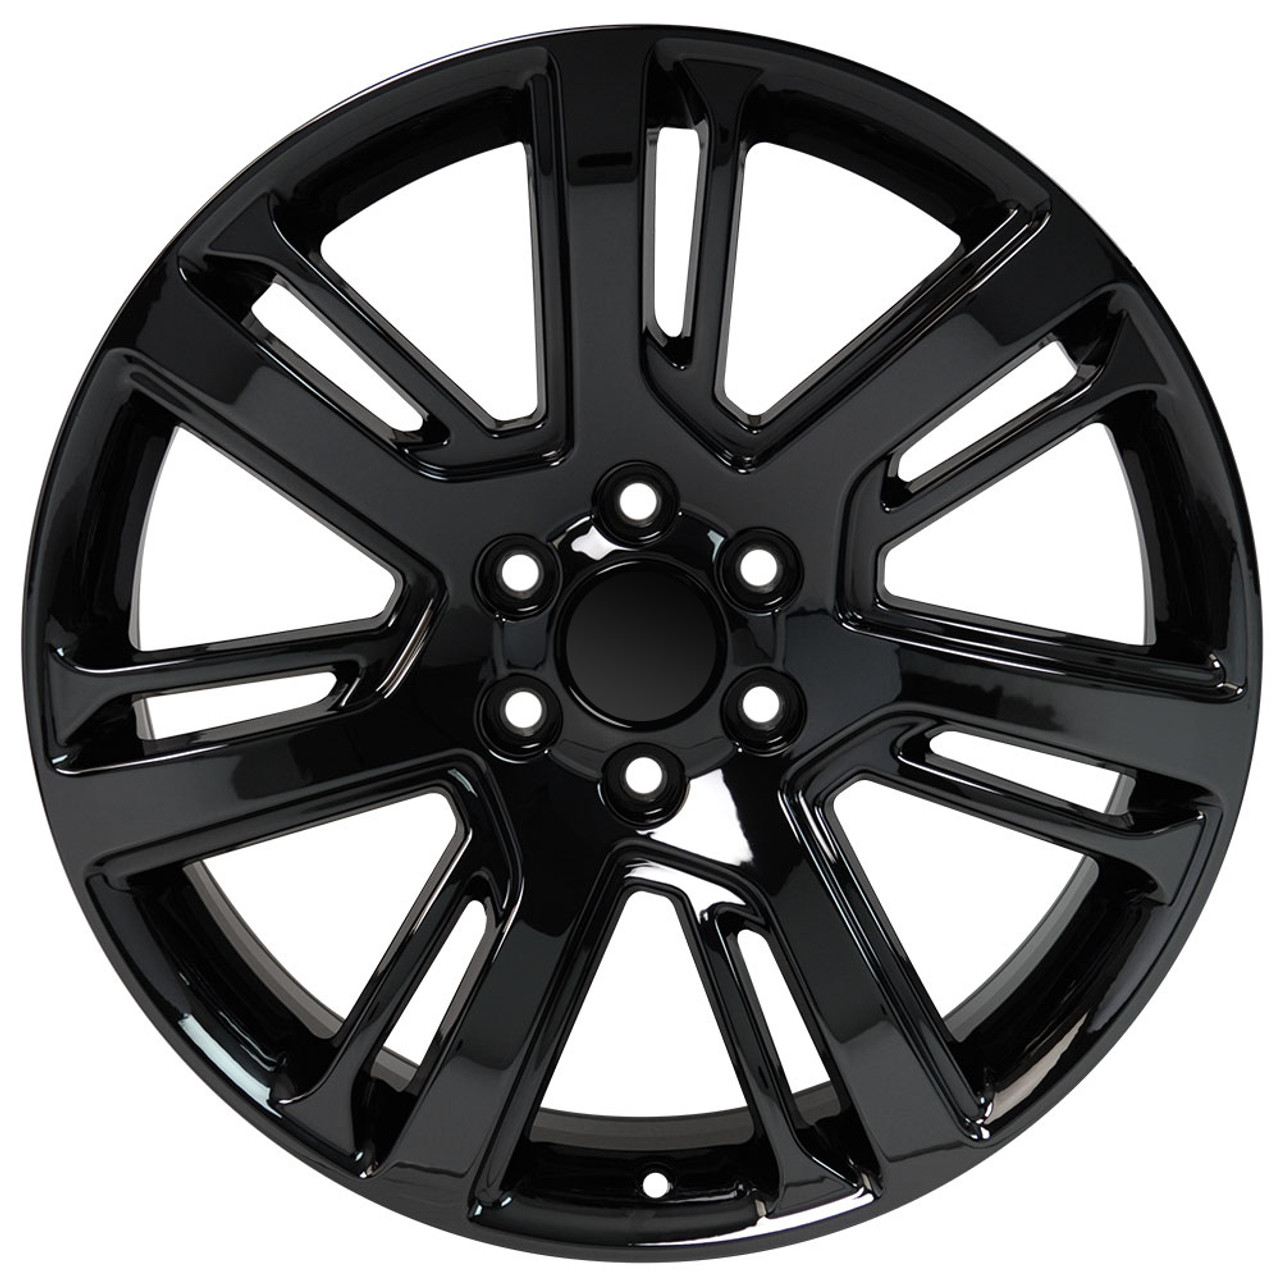 img wall cadillac like rims remington forum the tires threads new sold jpg white on